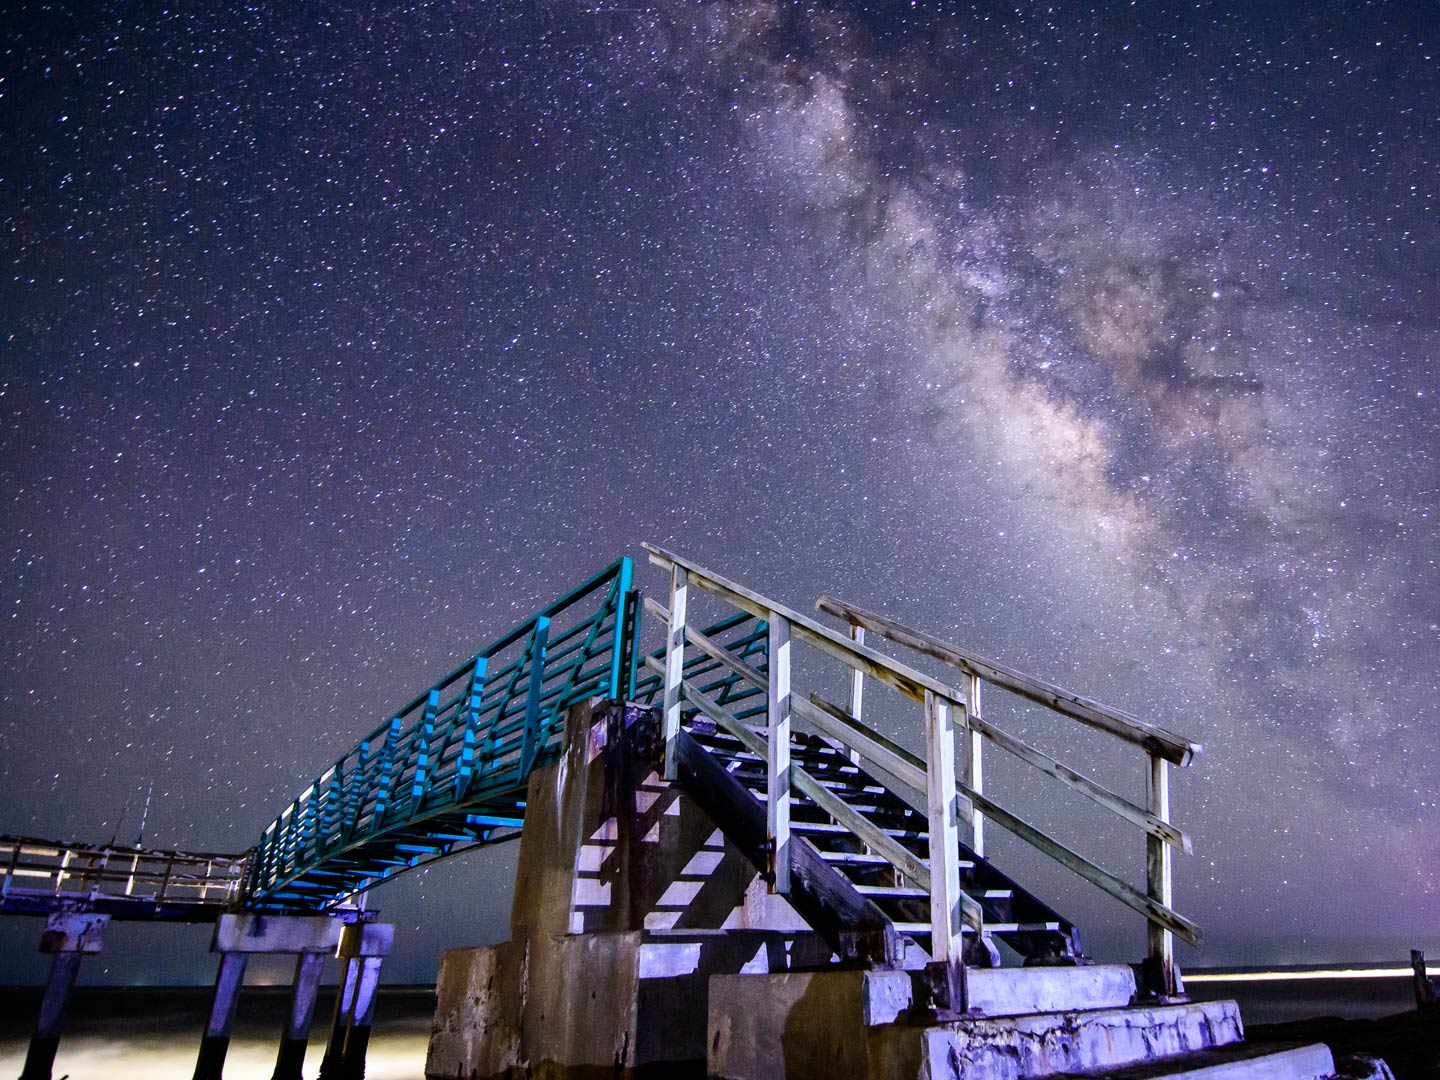 A view of the Milky Way from a pier in Matagorda